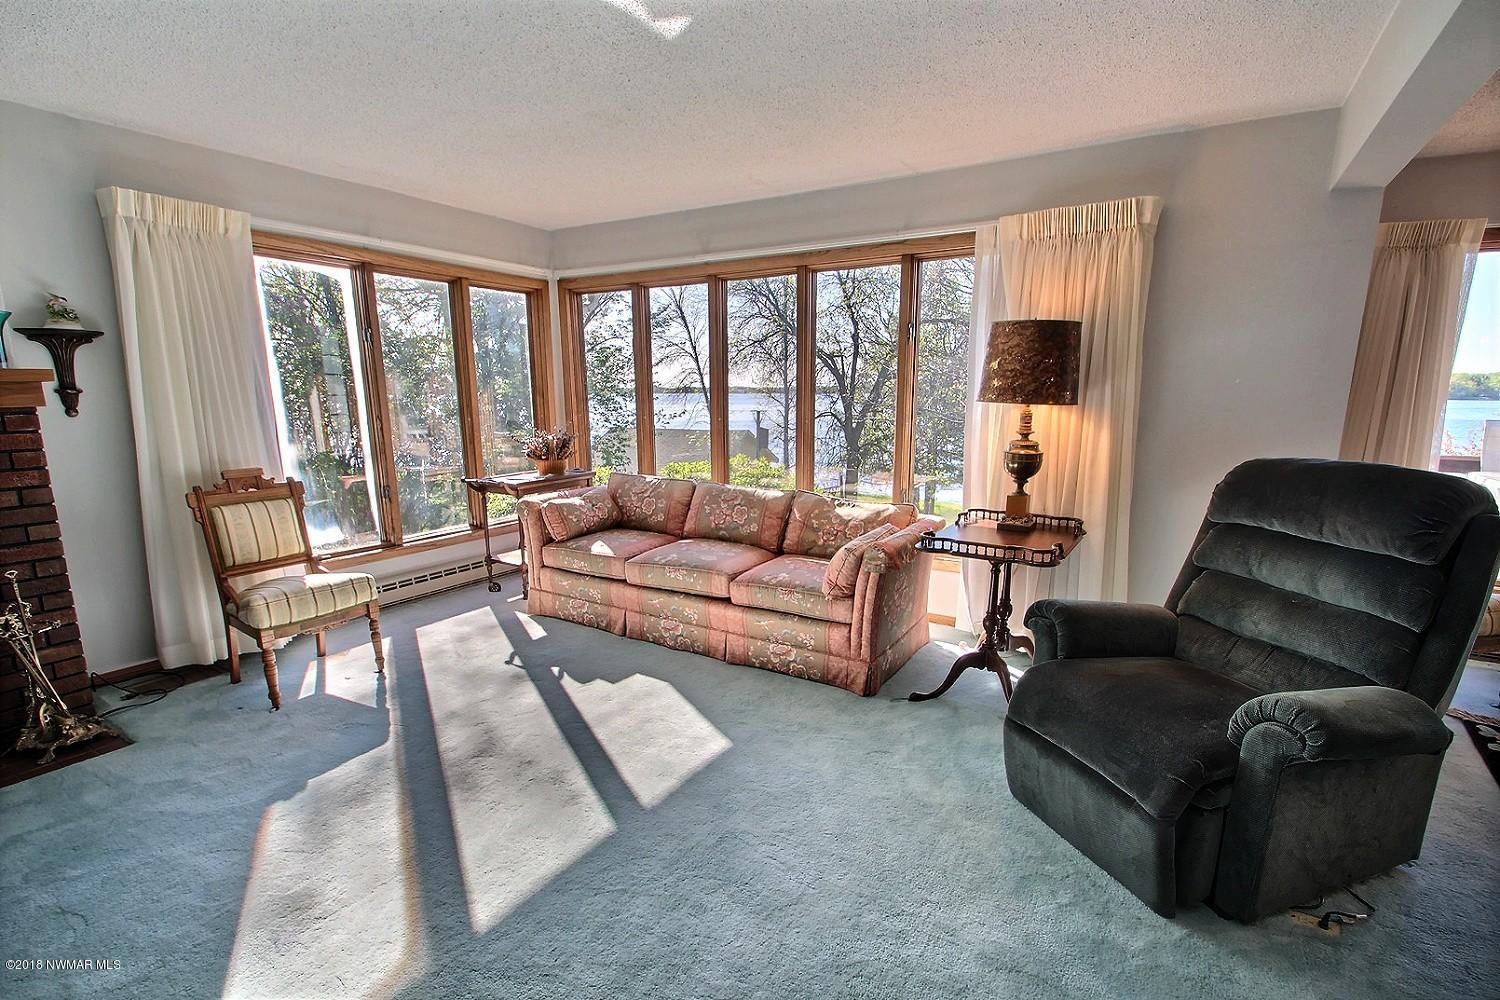 Dripping with natural light, the living room may just be your favorite spot in the home to enjoy the fantastic view of the lakeshore.